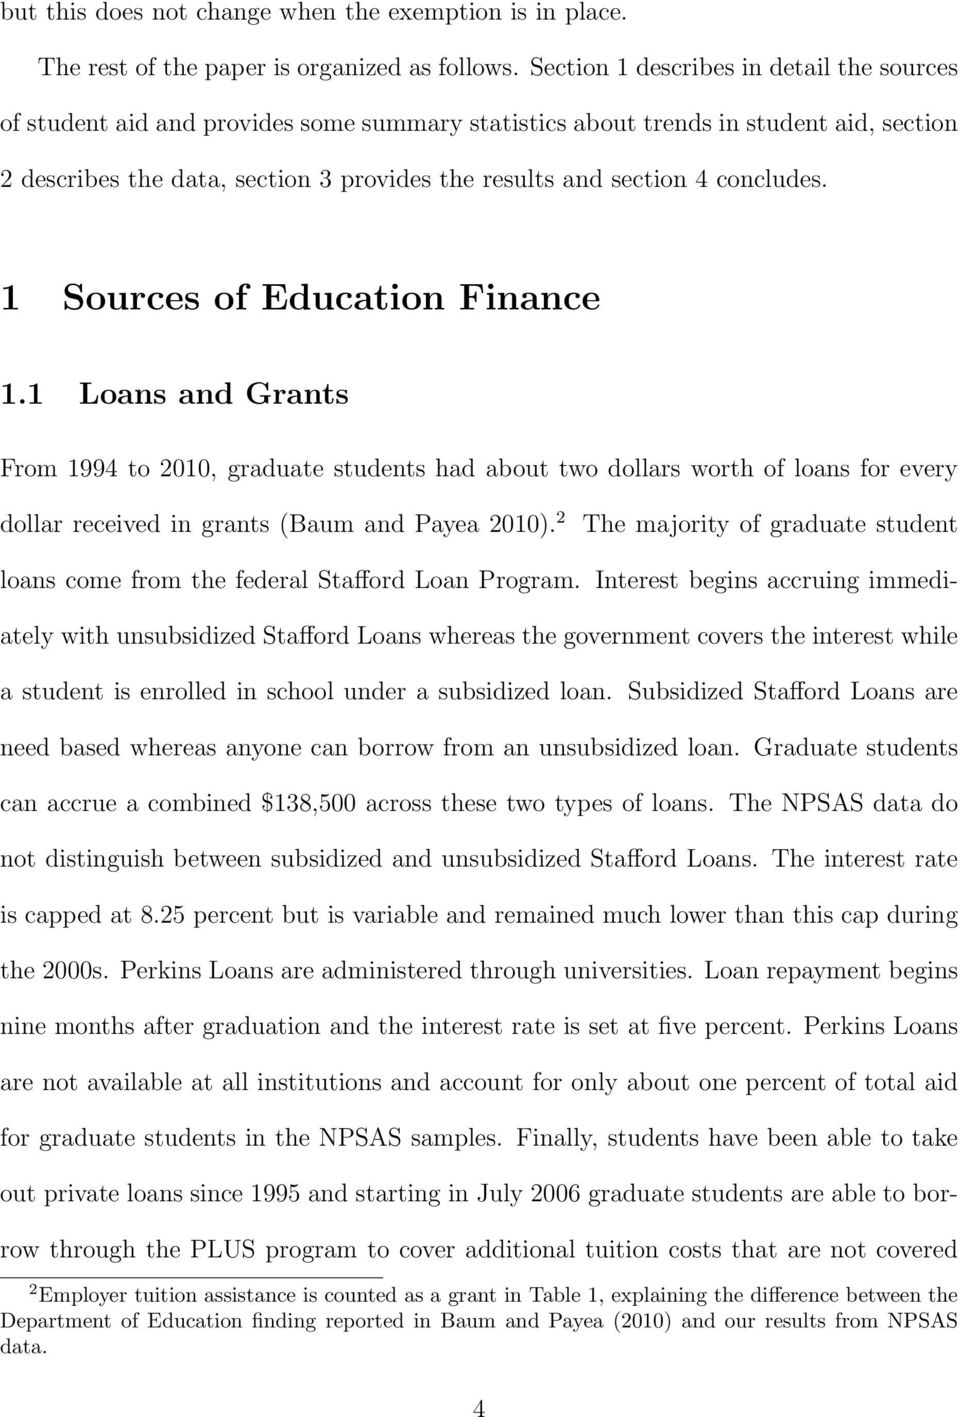 concludes. 1 Sources of Education Finance 1.1 Loans and Grants From 1994 to 2010, graduate students had about two dollars worth of loans for every dollar received in grants (Baum and Payea 2010).